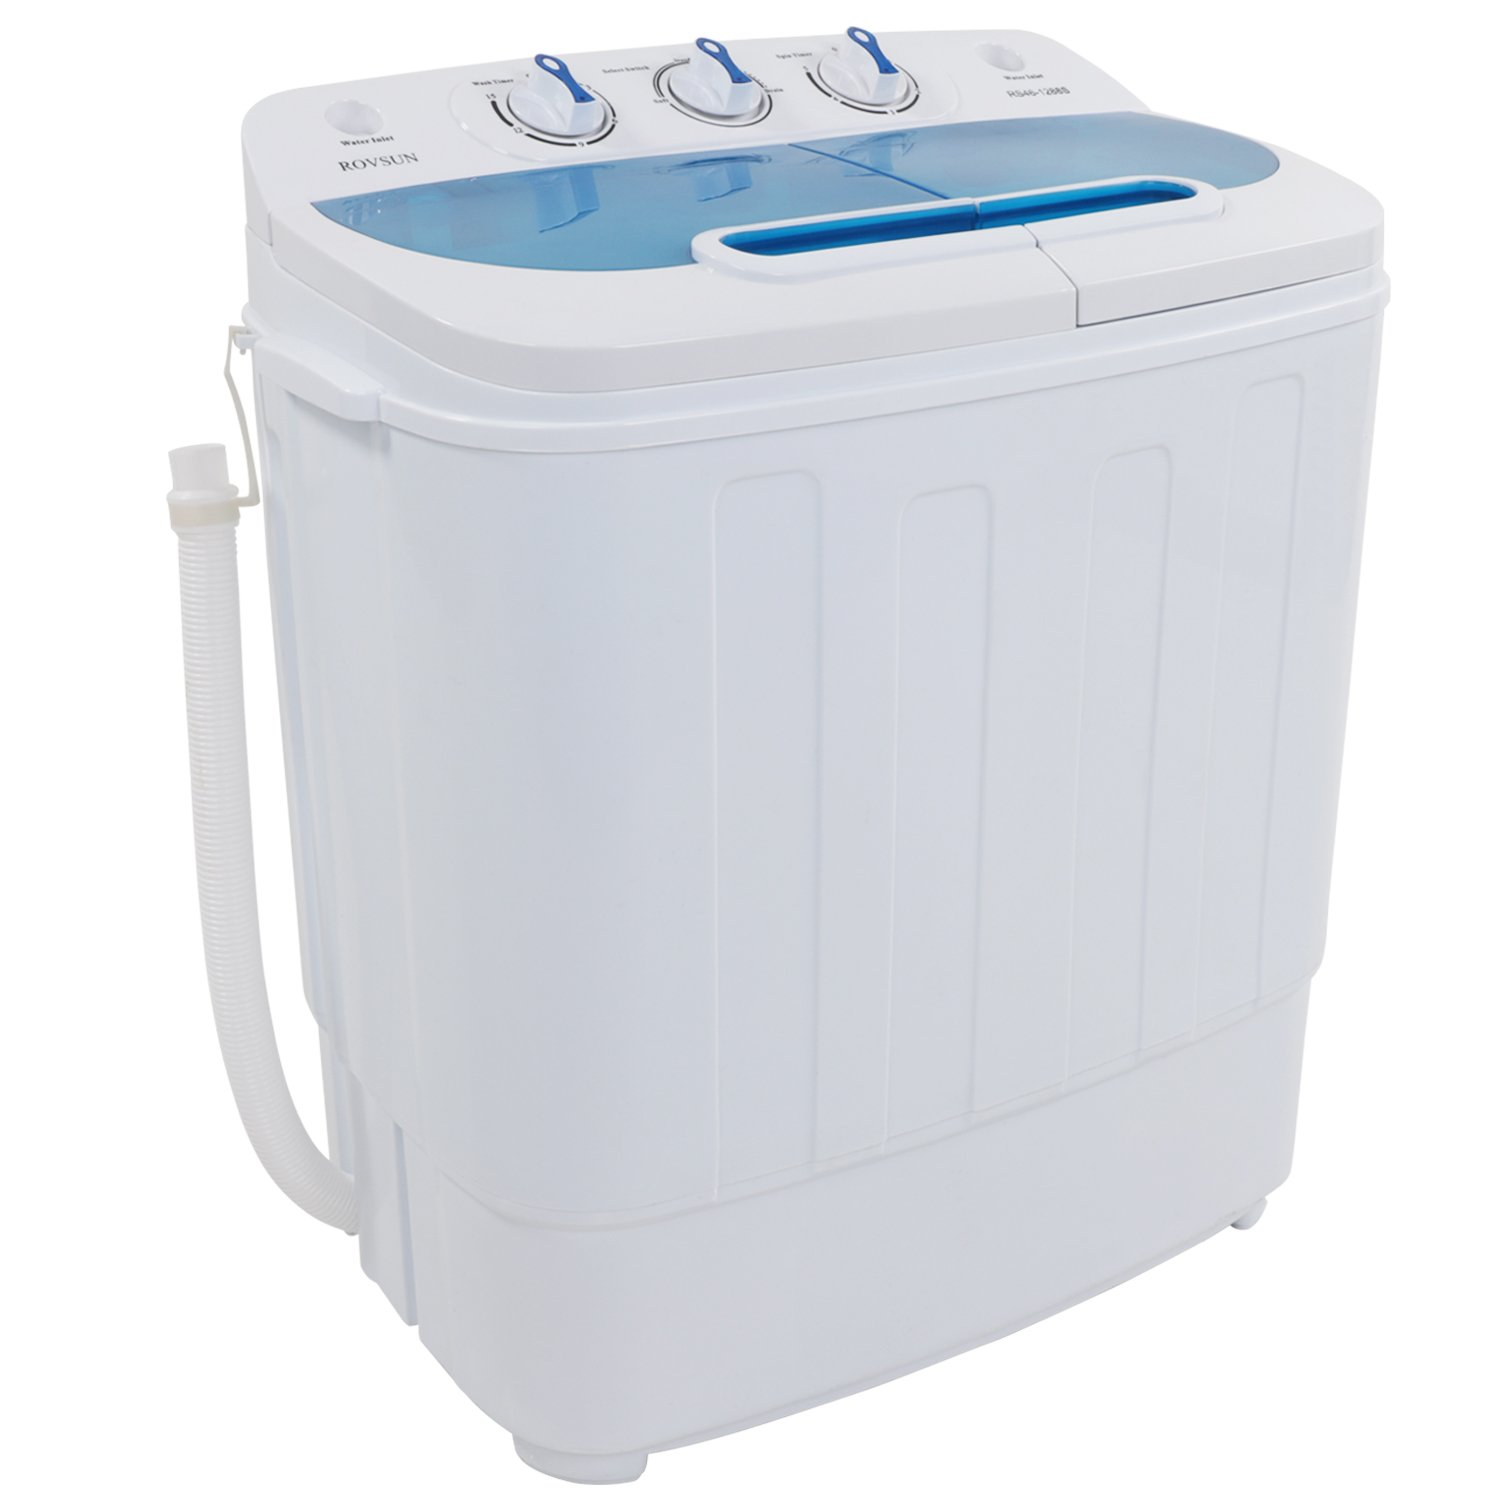 ROVSUN Portable Washing Machine with Twin Tub Electric Compact Mini Washer, Wash 8LBS+Spin 5LBS Capacity Energy/Save Space, Laundry Spin Cycle w/Hose,Perfect for Home RV Camping Dorms College Rooms by ROVSUN